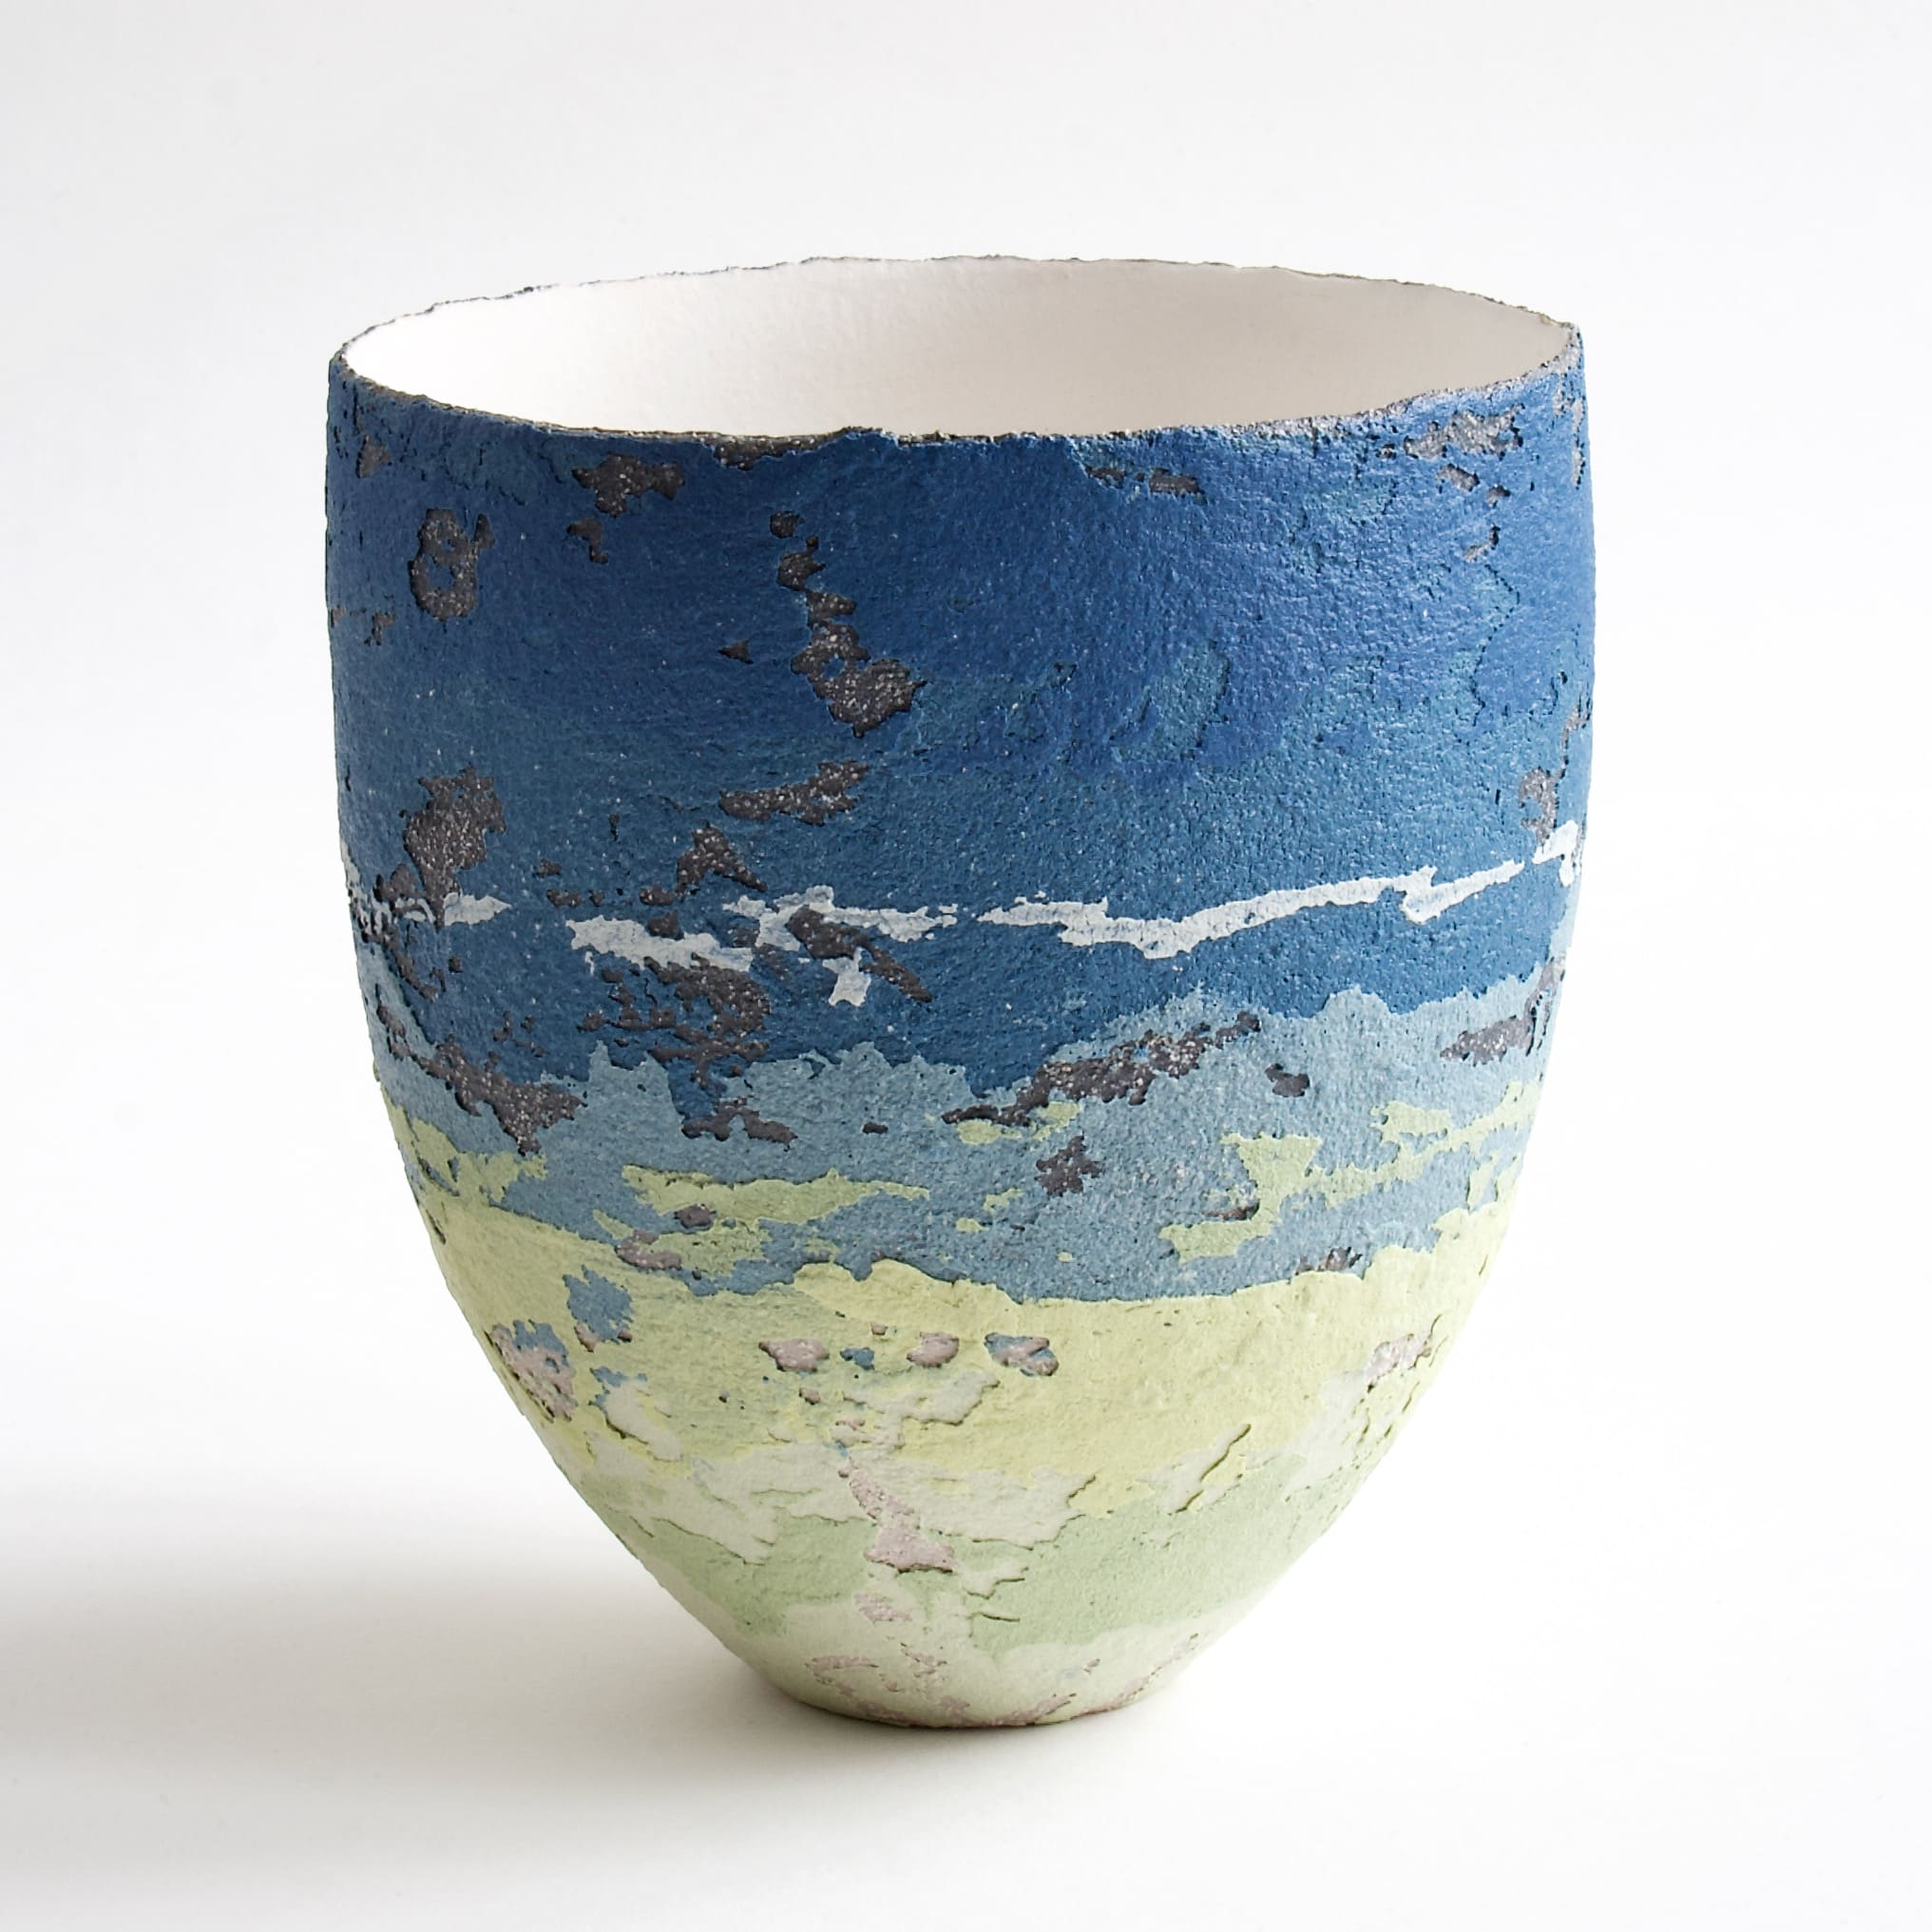 """<span class=""""link fancybox-details-link""""><a href=""""/artists/79-clare-conrad/works/8125-clare-conrad-vessel-white-interior-2021/"""">View Detail Page</a></span><div class=""""artist""""><strong>Clare Conrad</strong></div> b. 1948 <div class=""""title""""><em>Vessel, white interior</em>, 2021</div> <div class=""""medium"""">wheel-thrown stoneware </div> <div class=""""dimensions"""">h. 13.5 cm </div><div class=""""price"""">£220.00</div><div class=""""copyright_line"""">Own Art: £22 x 10 Months, 0% APR</div>"""